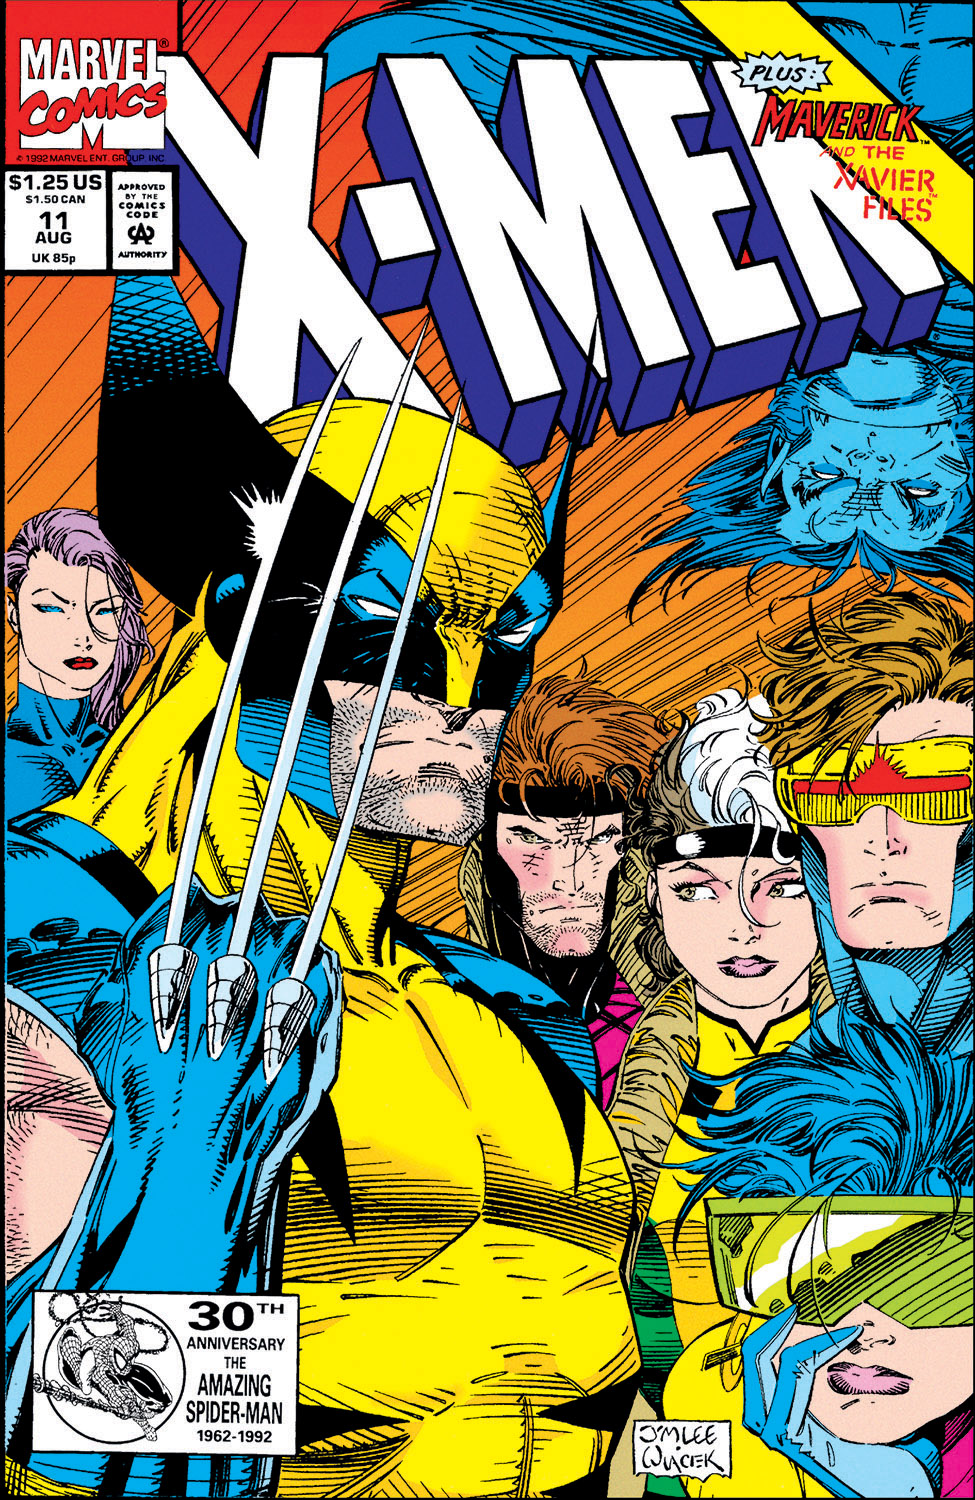 Collecting X-Men, Vol. 2 #1 - 113 as Graphic Novels